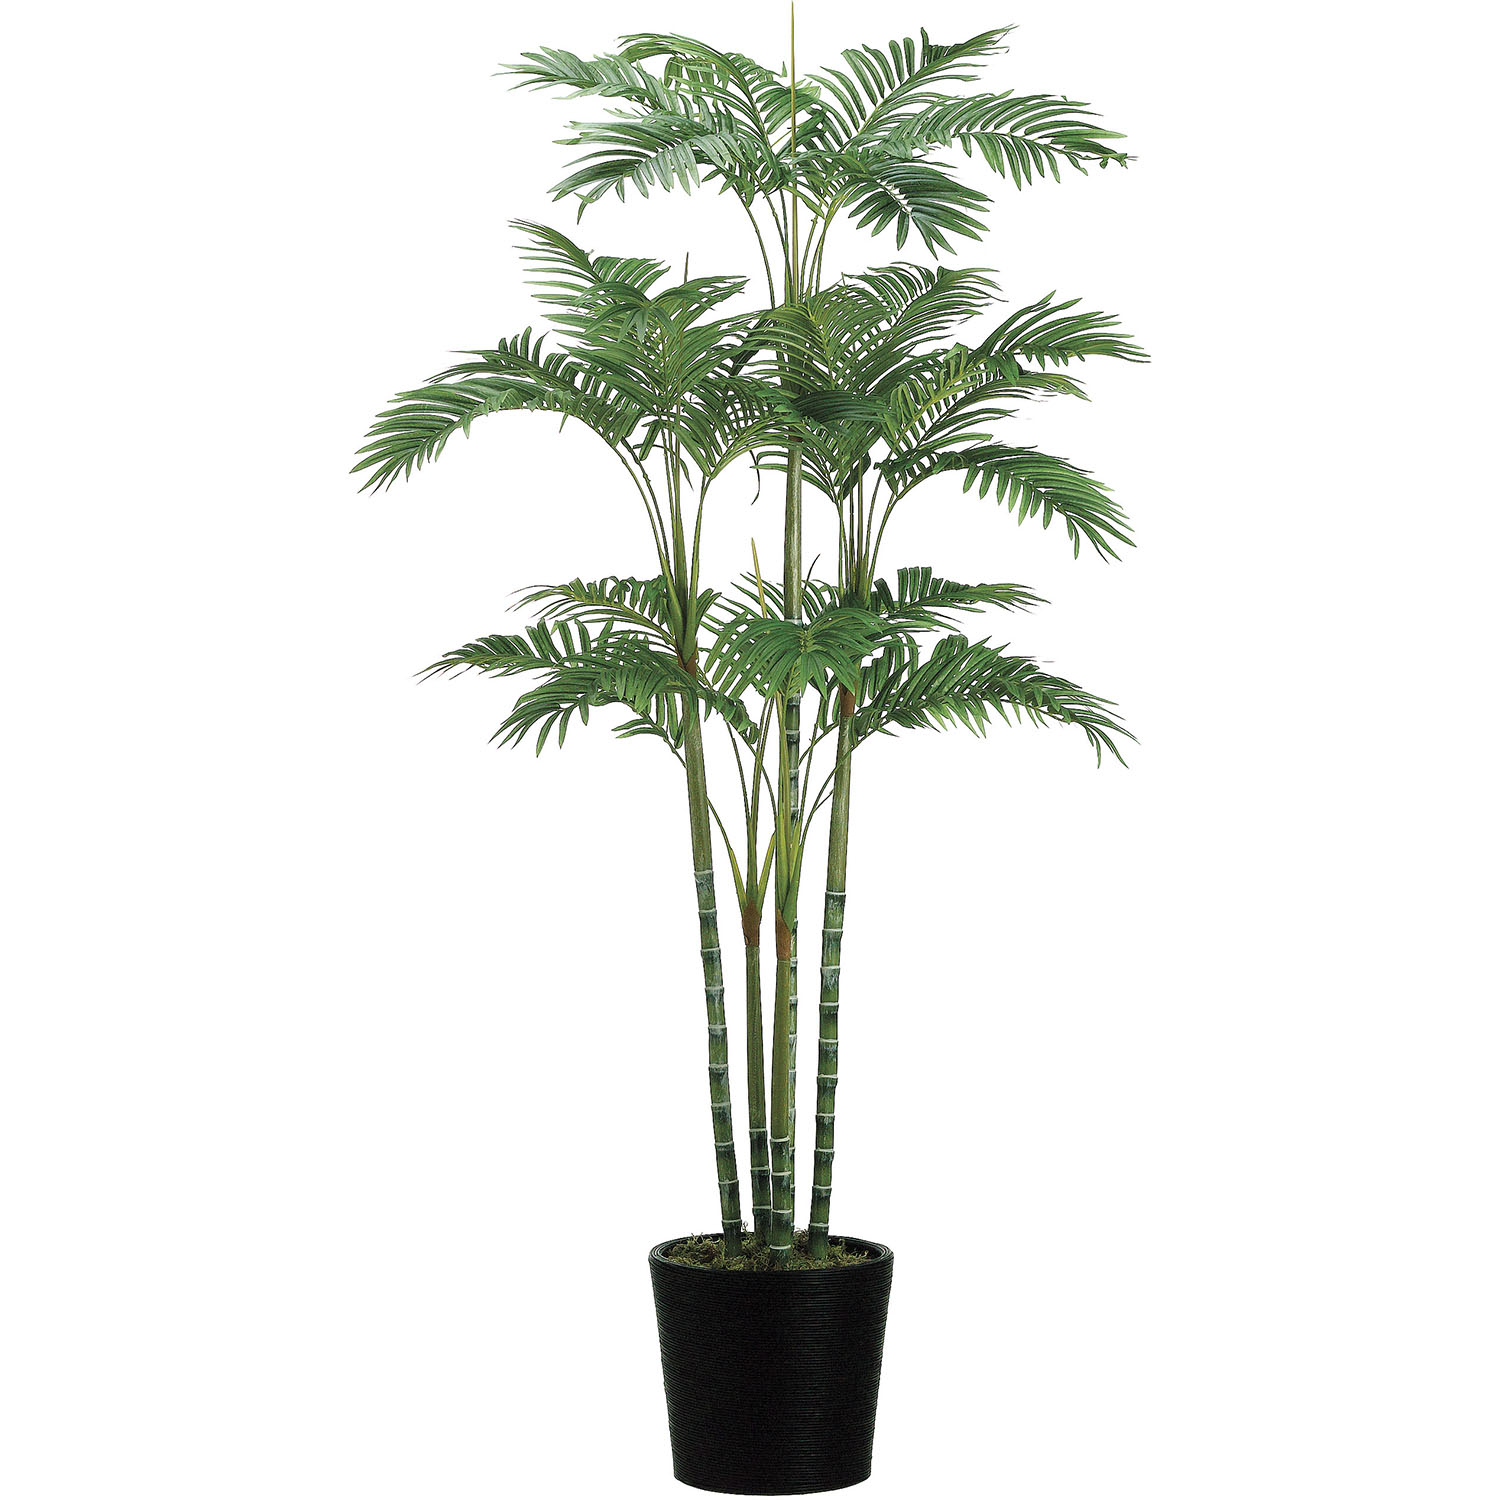 Select Artificial-Areca-Palm-Bamboo-Container Product Picture 2390